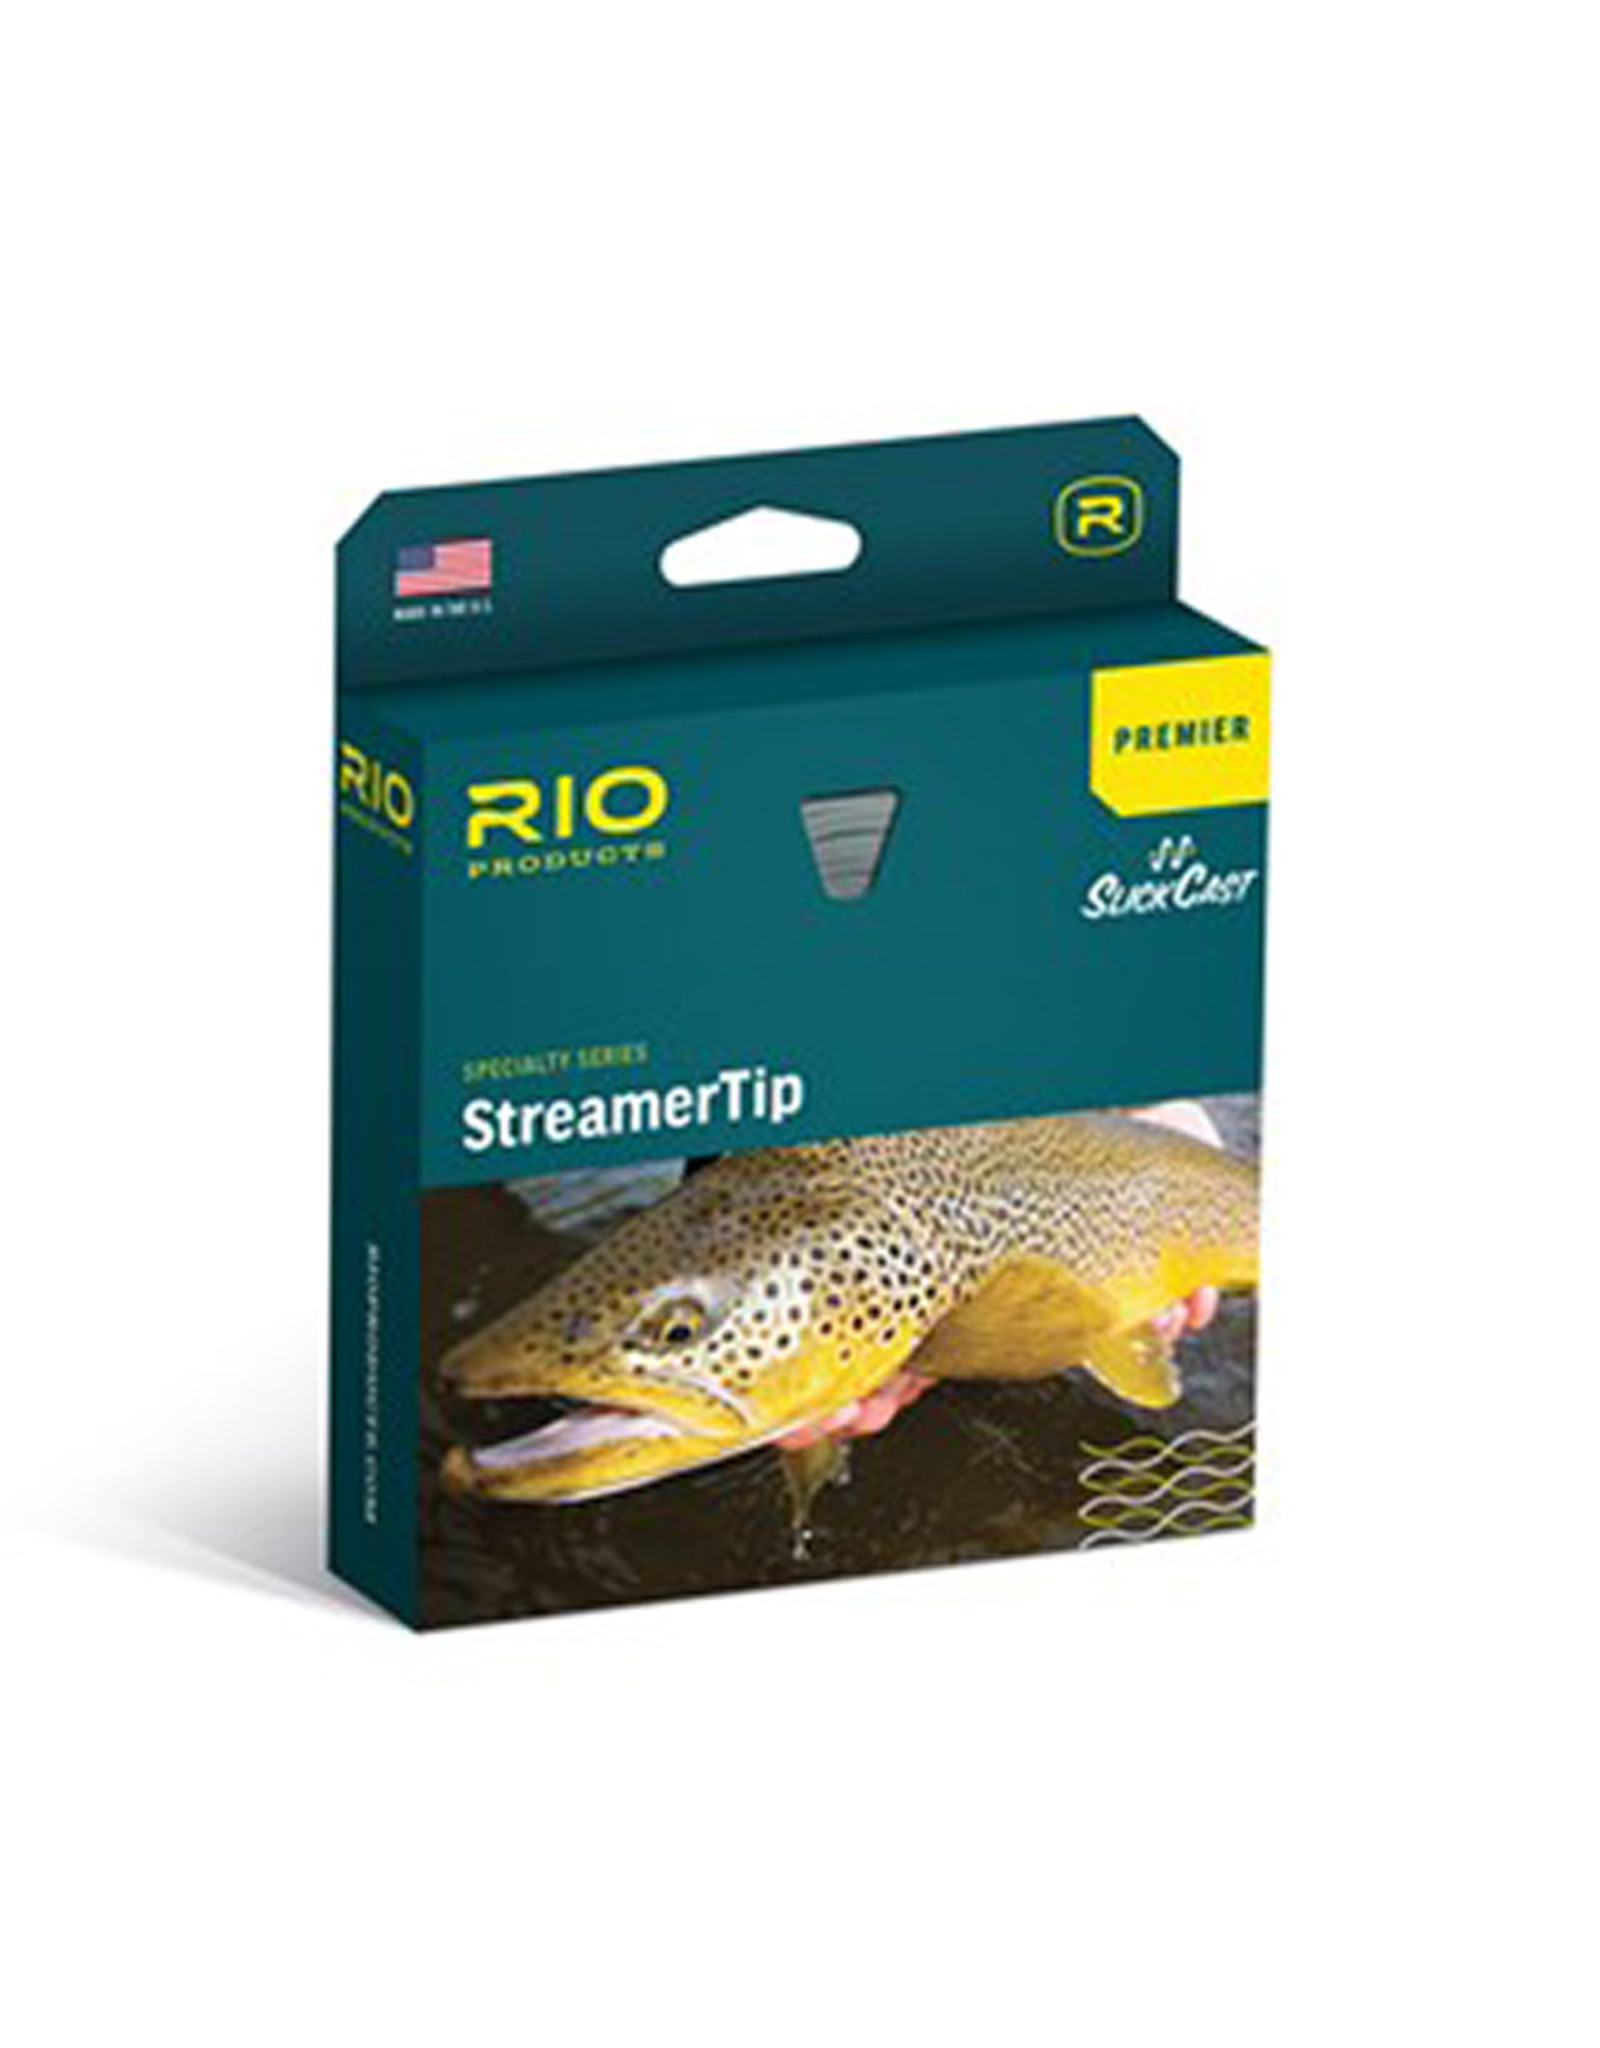 RIO Products Premier Streamer Tip F/S6